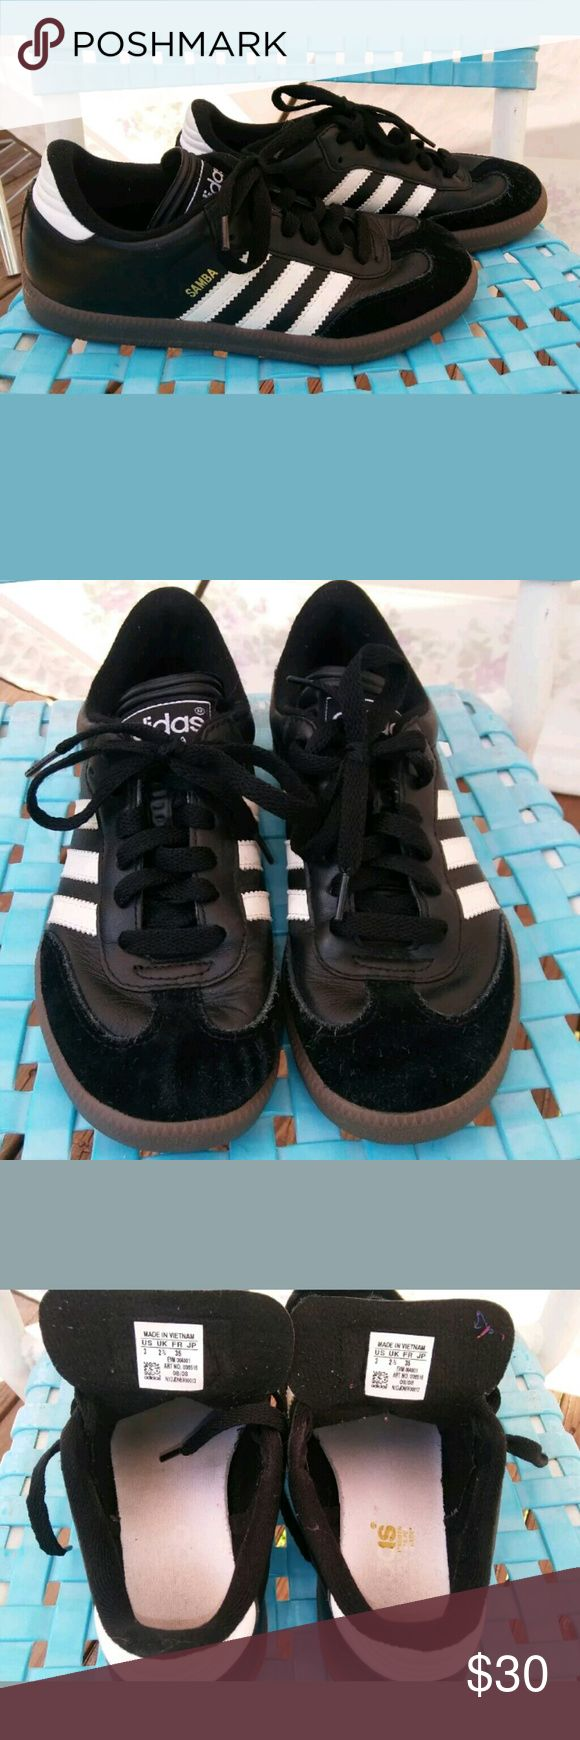 Boys size 3 samba adidas soccer 3 striped shoes. Boy's Adidas Samba Classic Jr SOCCER SPORT 3 Stripe Sneakers Tennis Shoes SIZE 3. Pre-owned but has lots of wear left. adidas Shoes